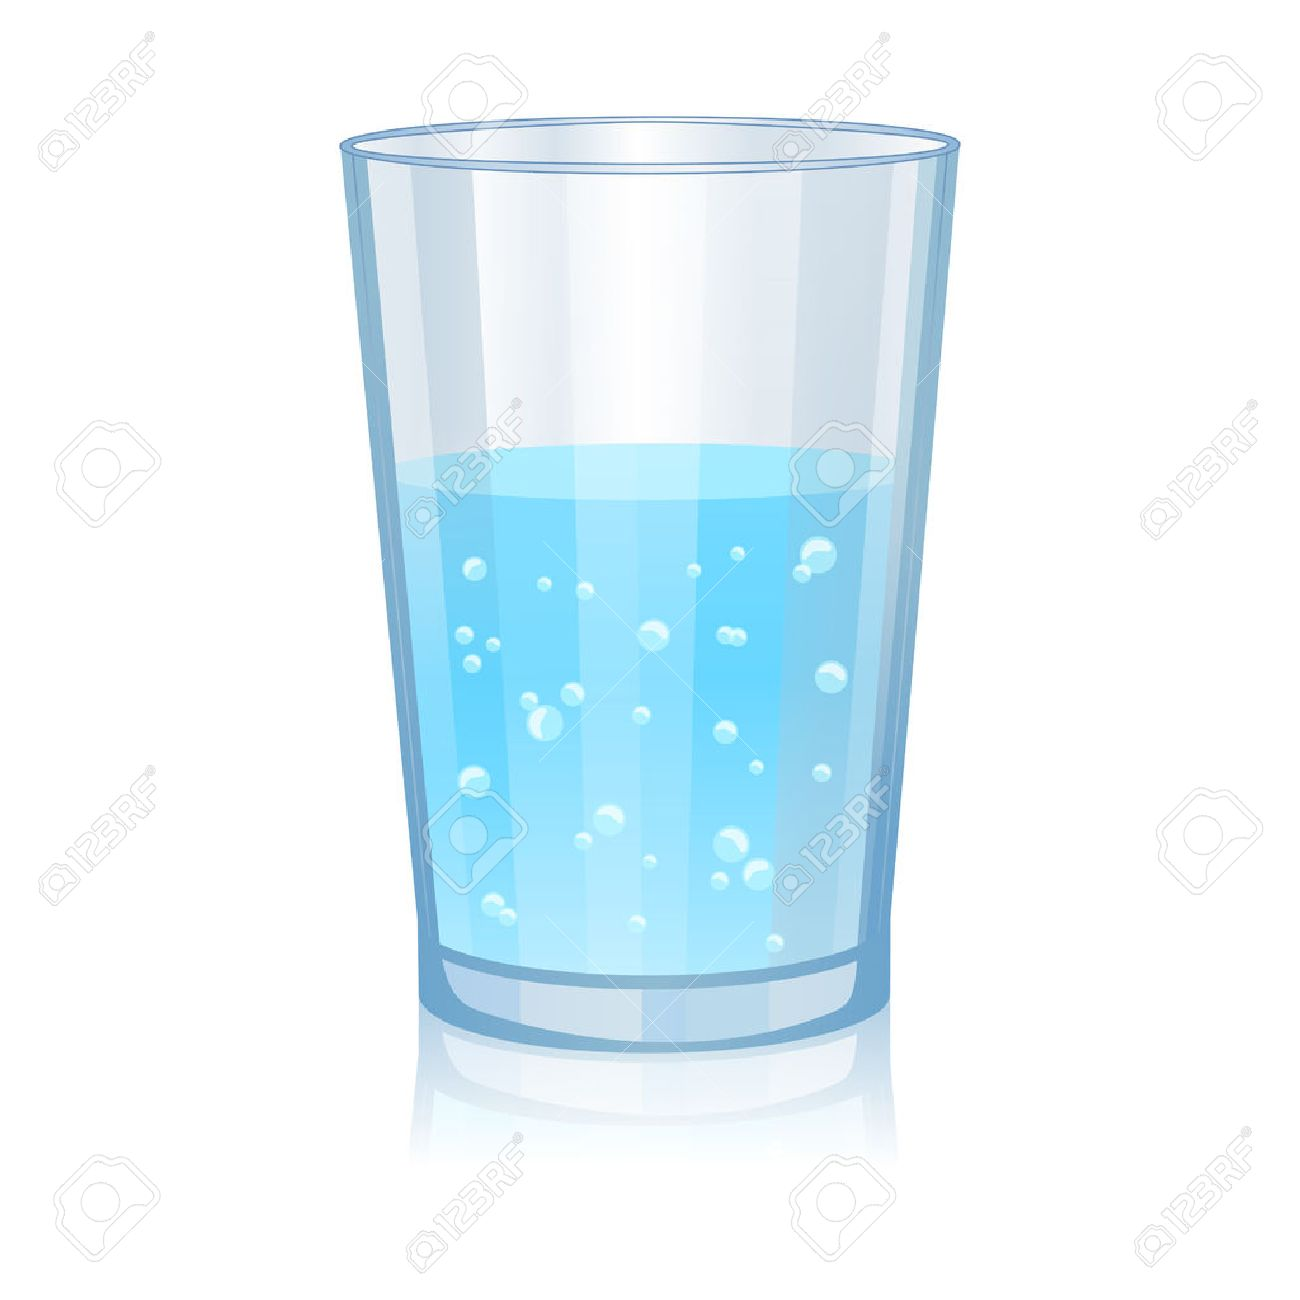 Glass with water isolated vector illustration on white background - 50649904